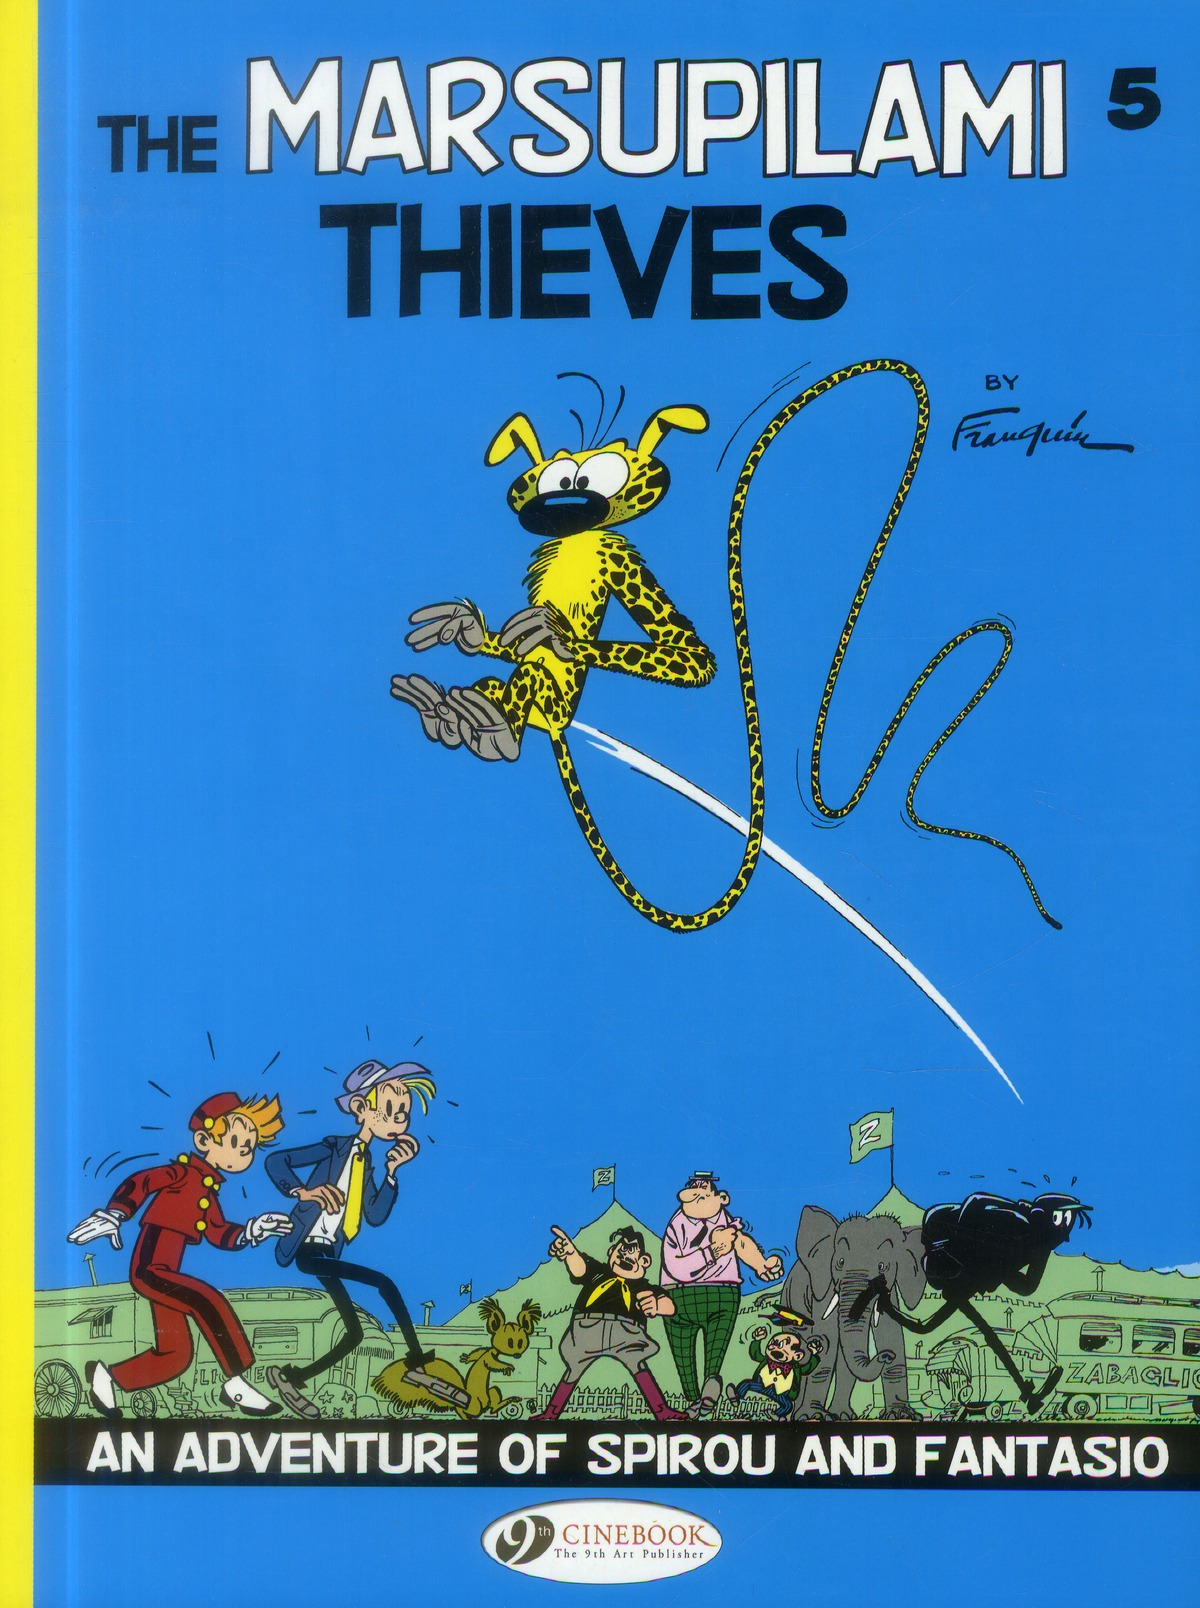 SPIROU & FANTASIO - TOME 5 THE MARSUPILAMI THIEVES - VOL05